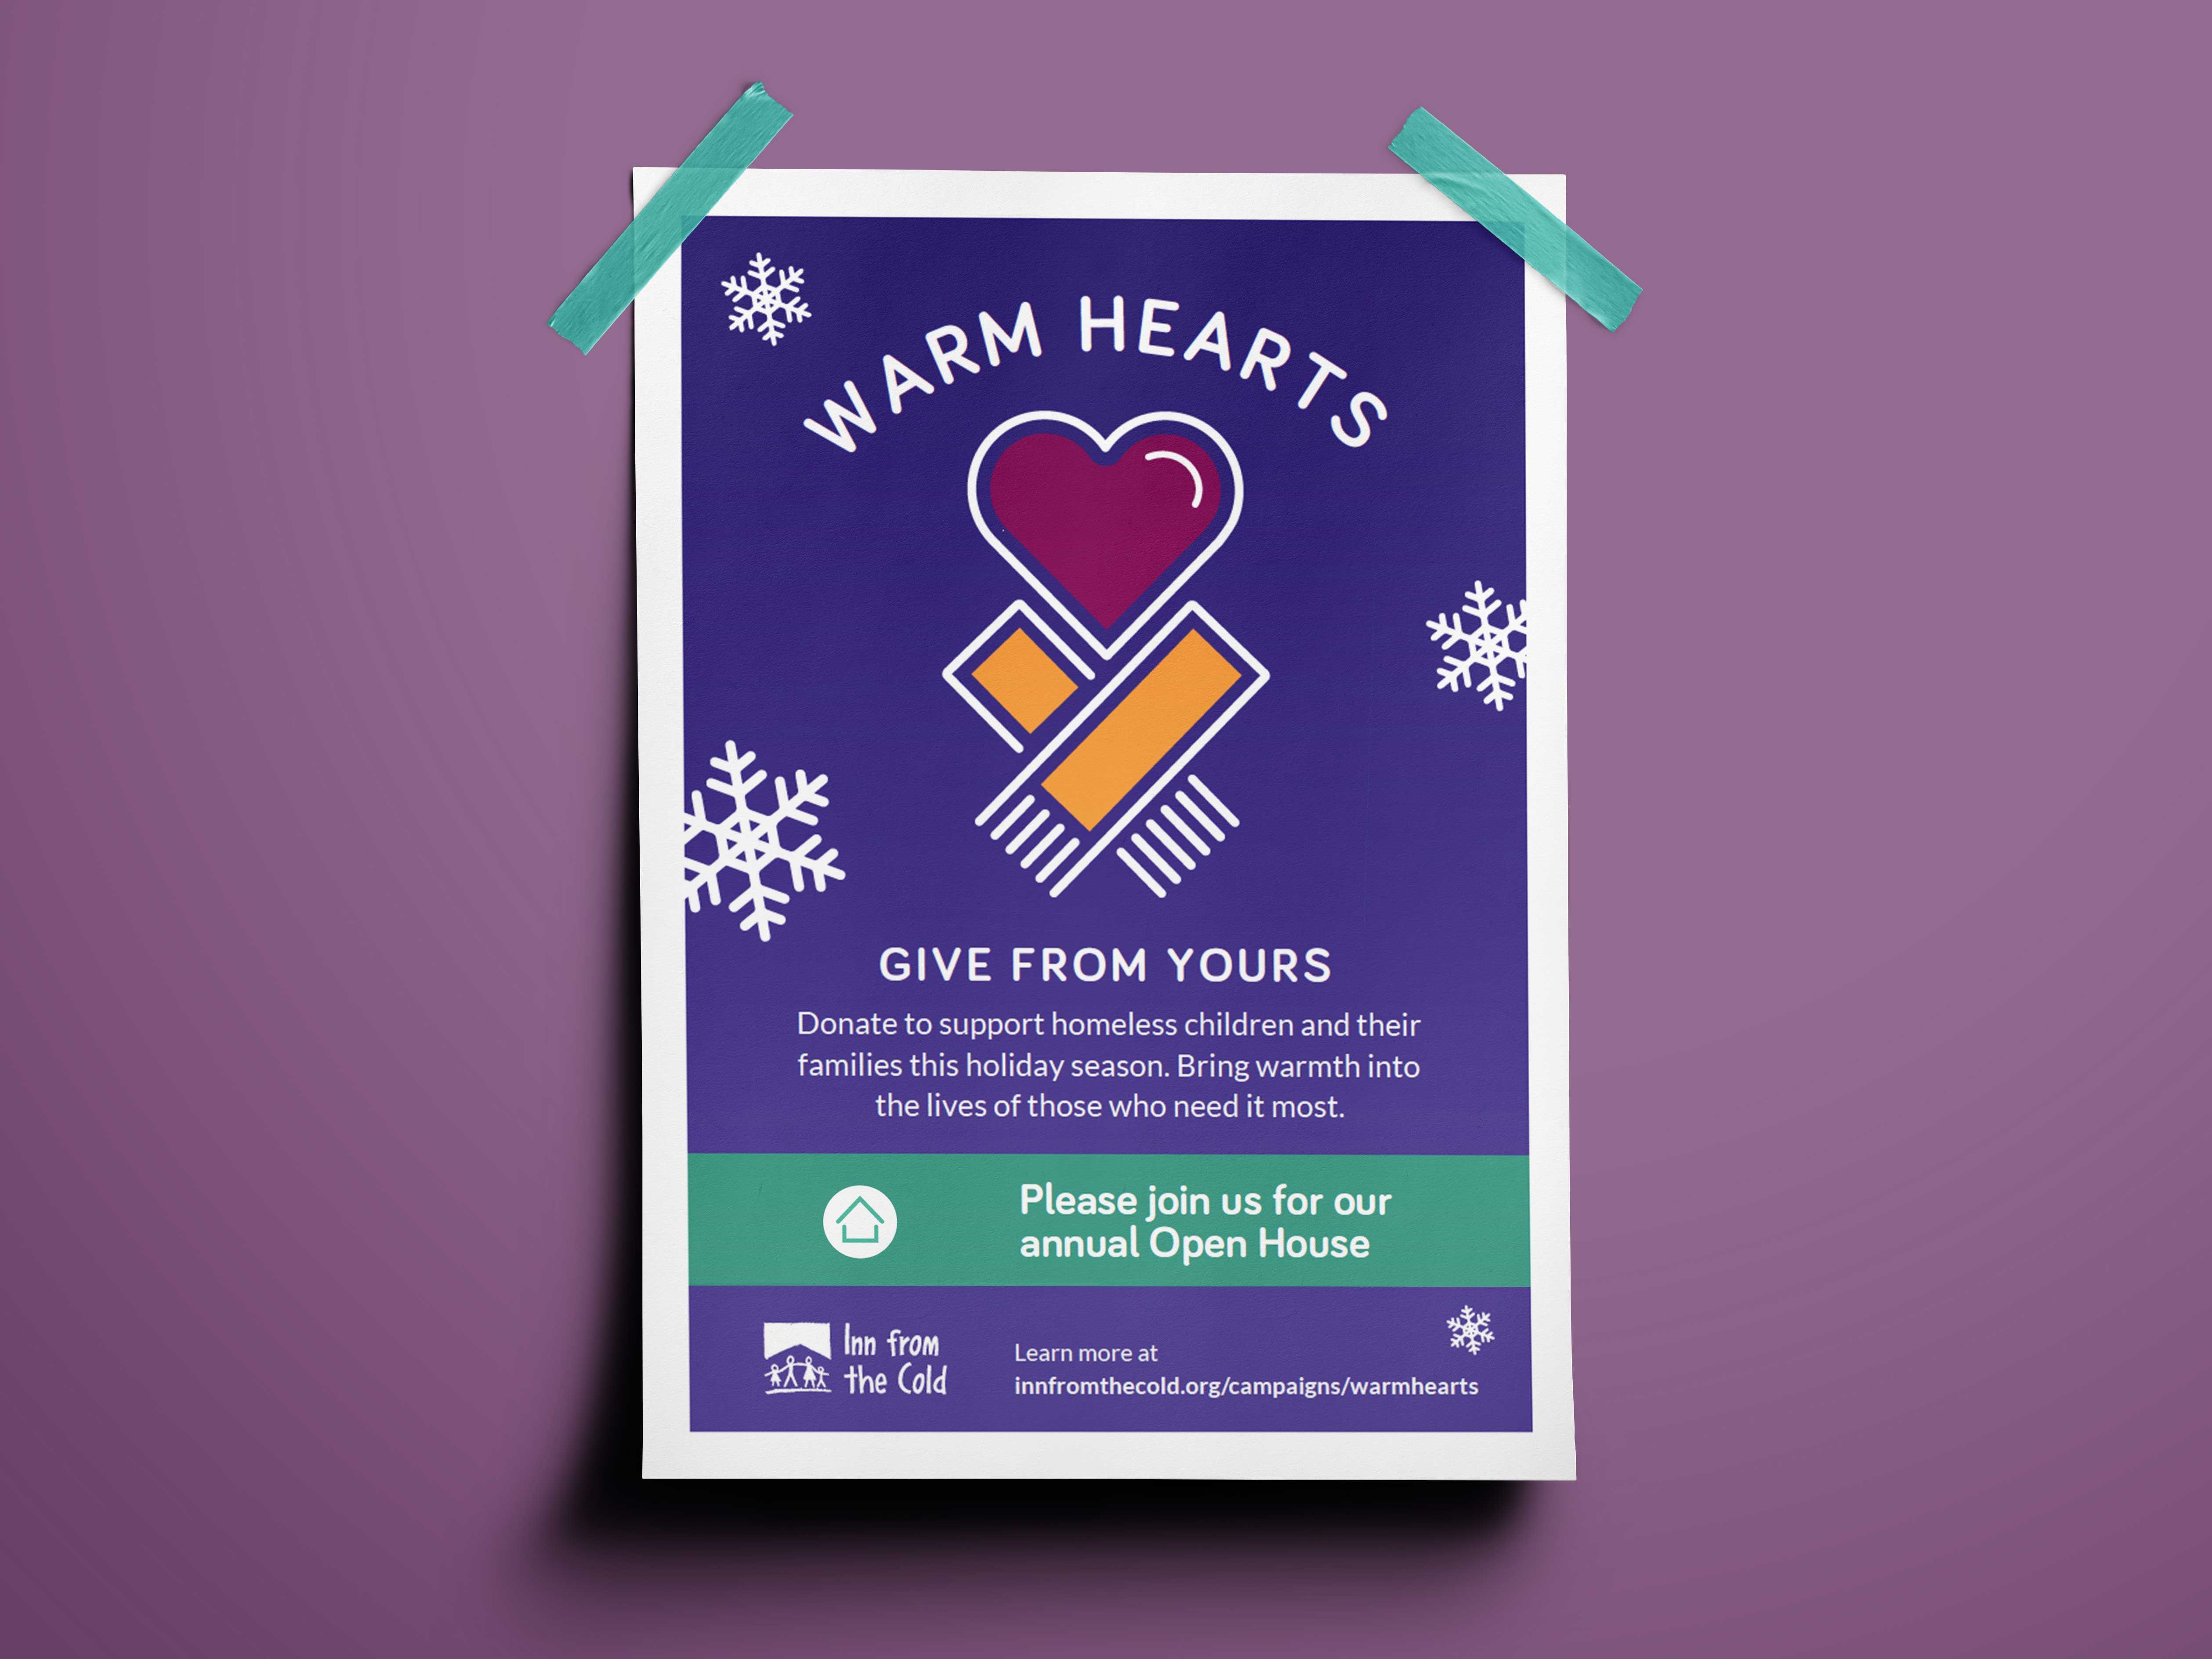 Warm Hearts Fundraising Campaign Poster